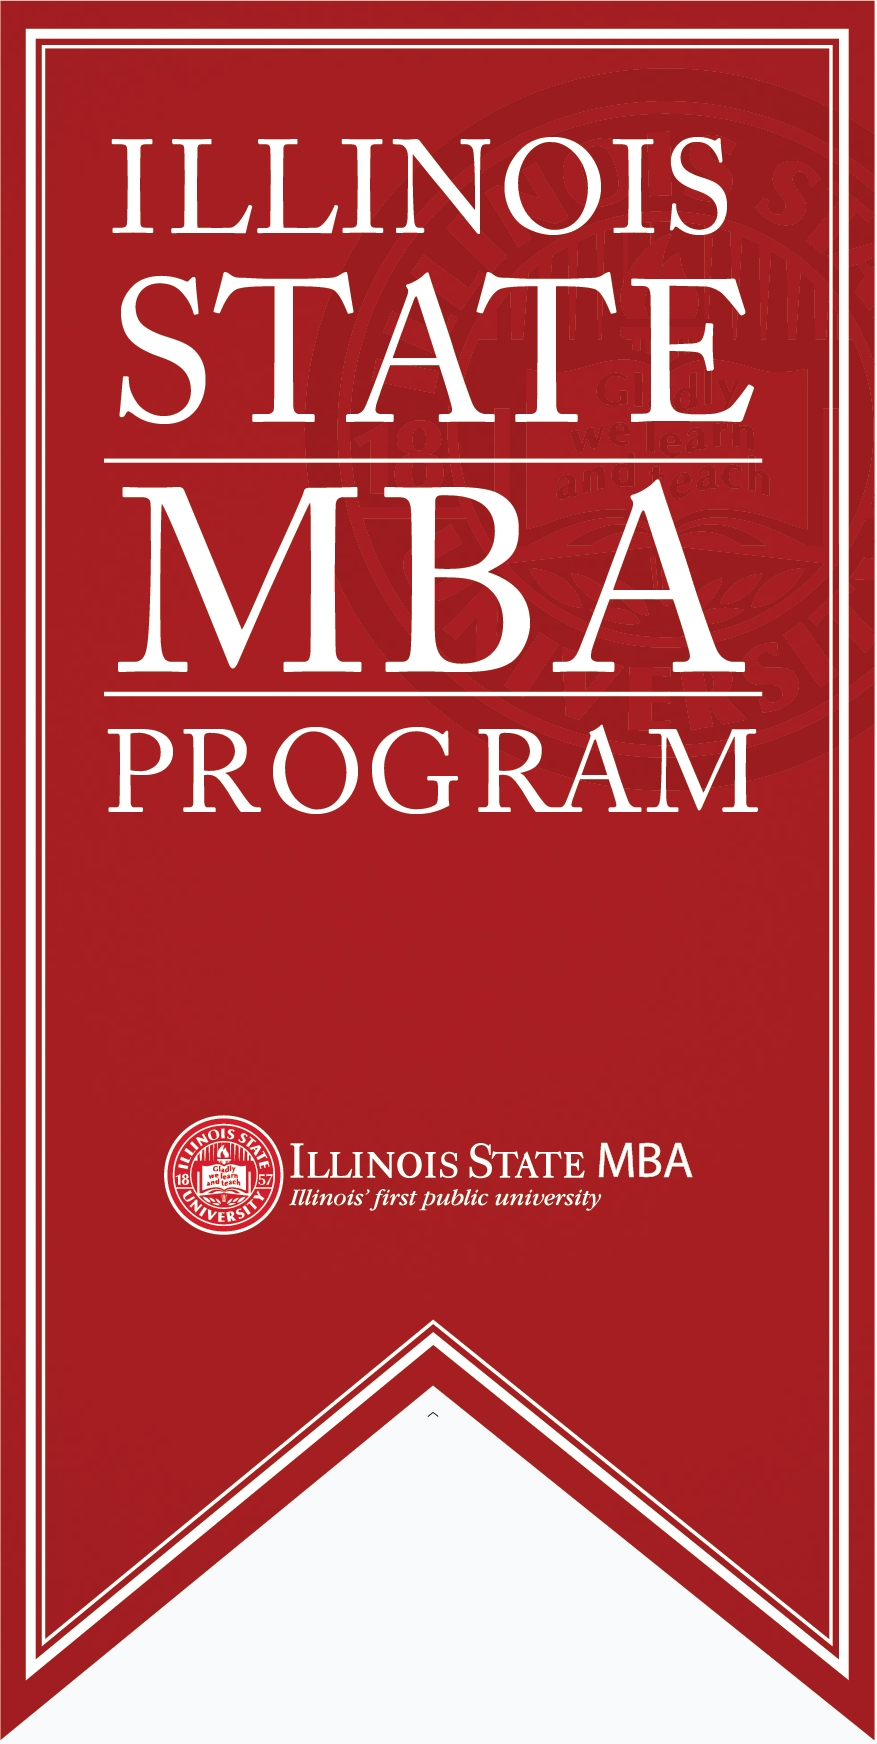 cleveland state mba application deadline